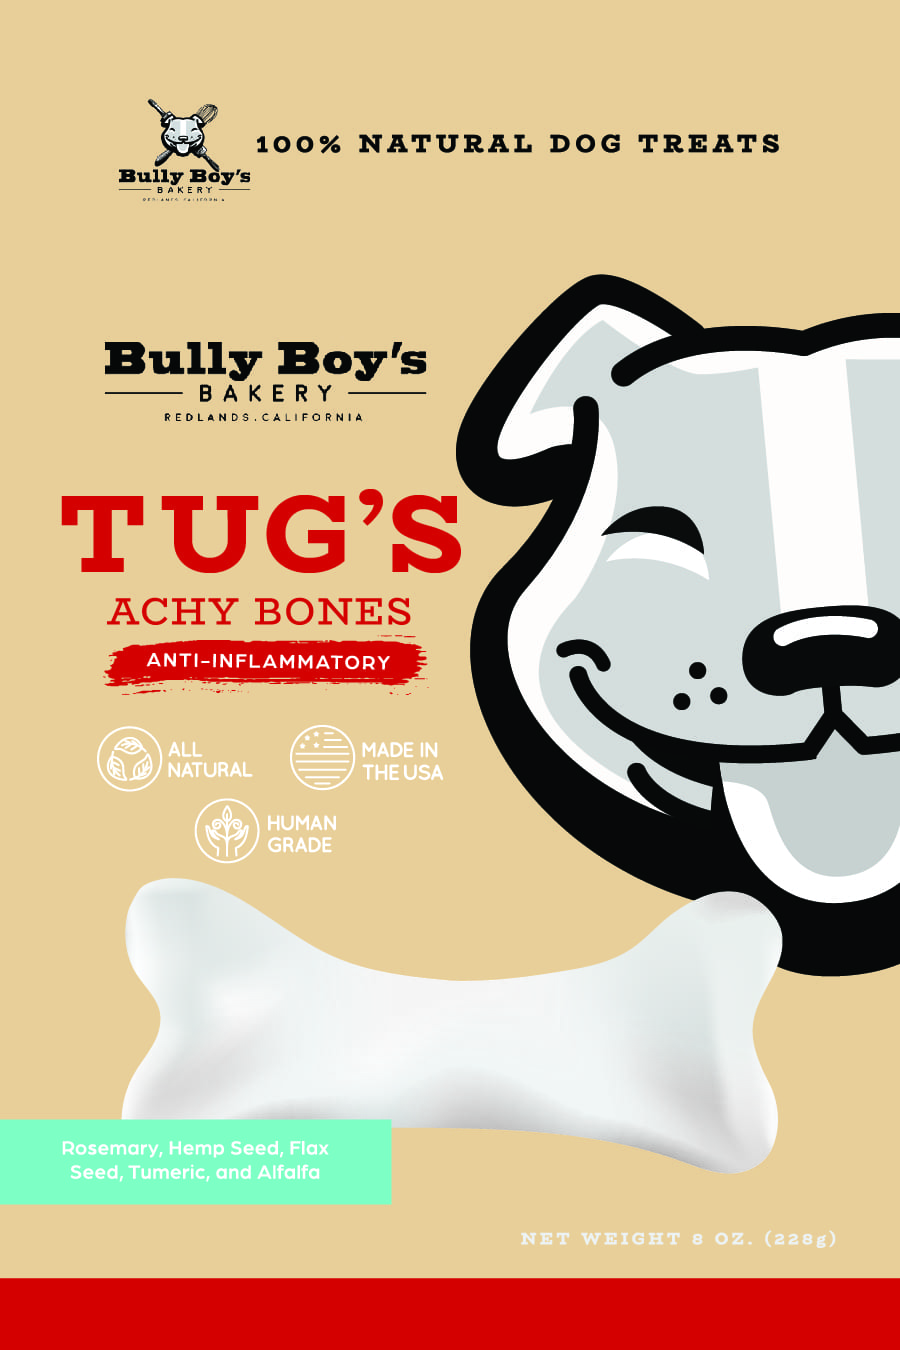 Bully Boys Package design FRONT APPROVED_Bully Boys-Tugs achy bones FRONT